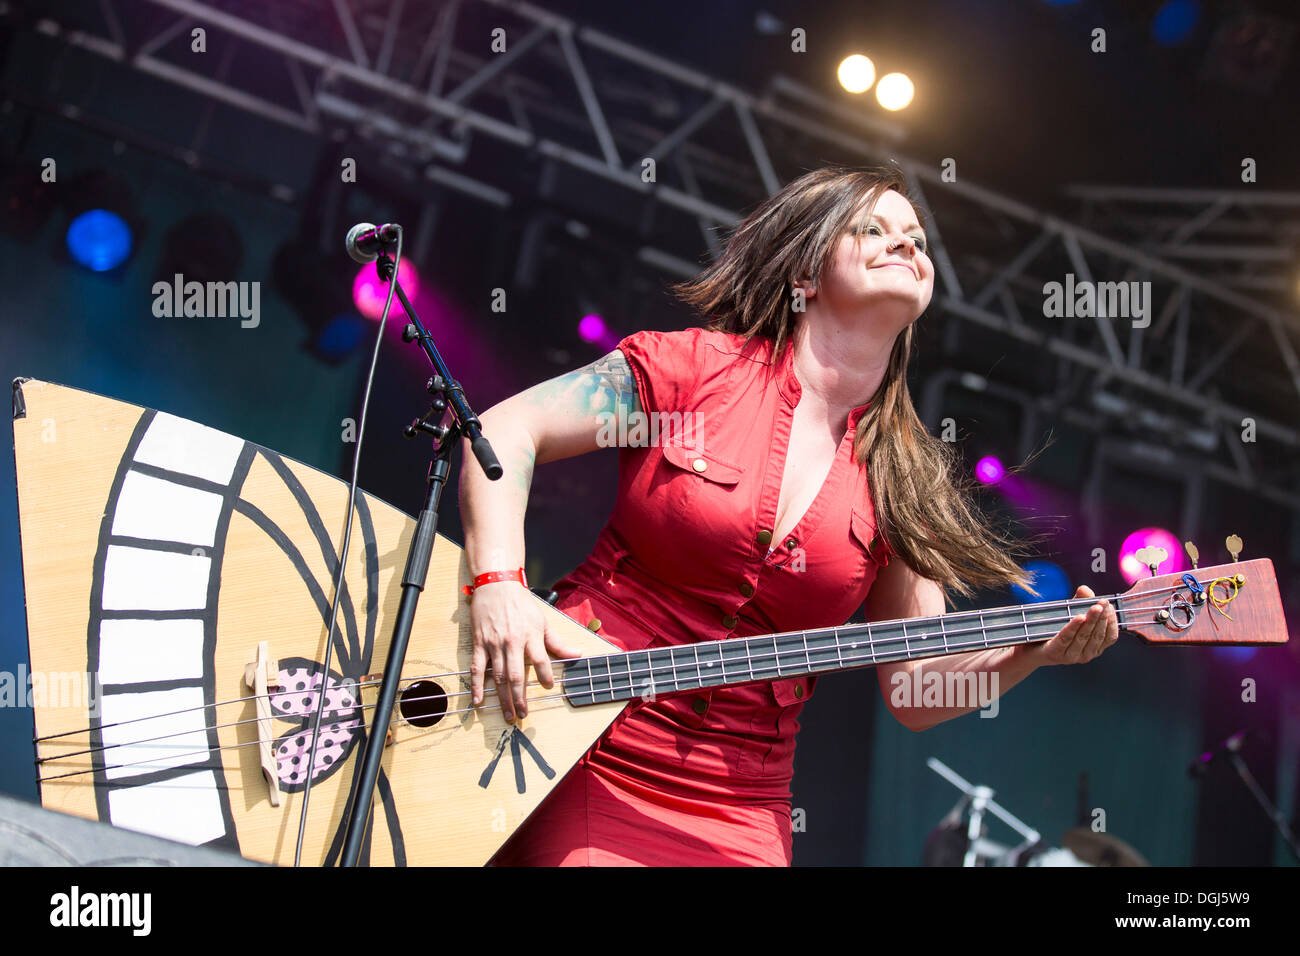 Marianne Sveen with a balalaika from the Norwegian girl band Katzenjammer performing live at Heitere Open Air in Zofingen - Stock Image